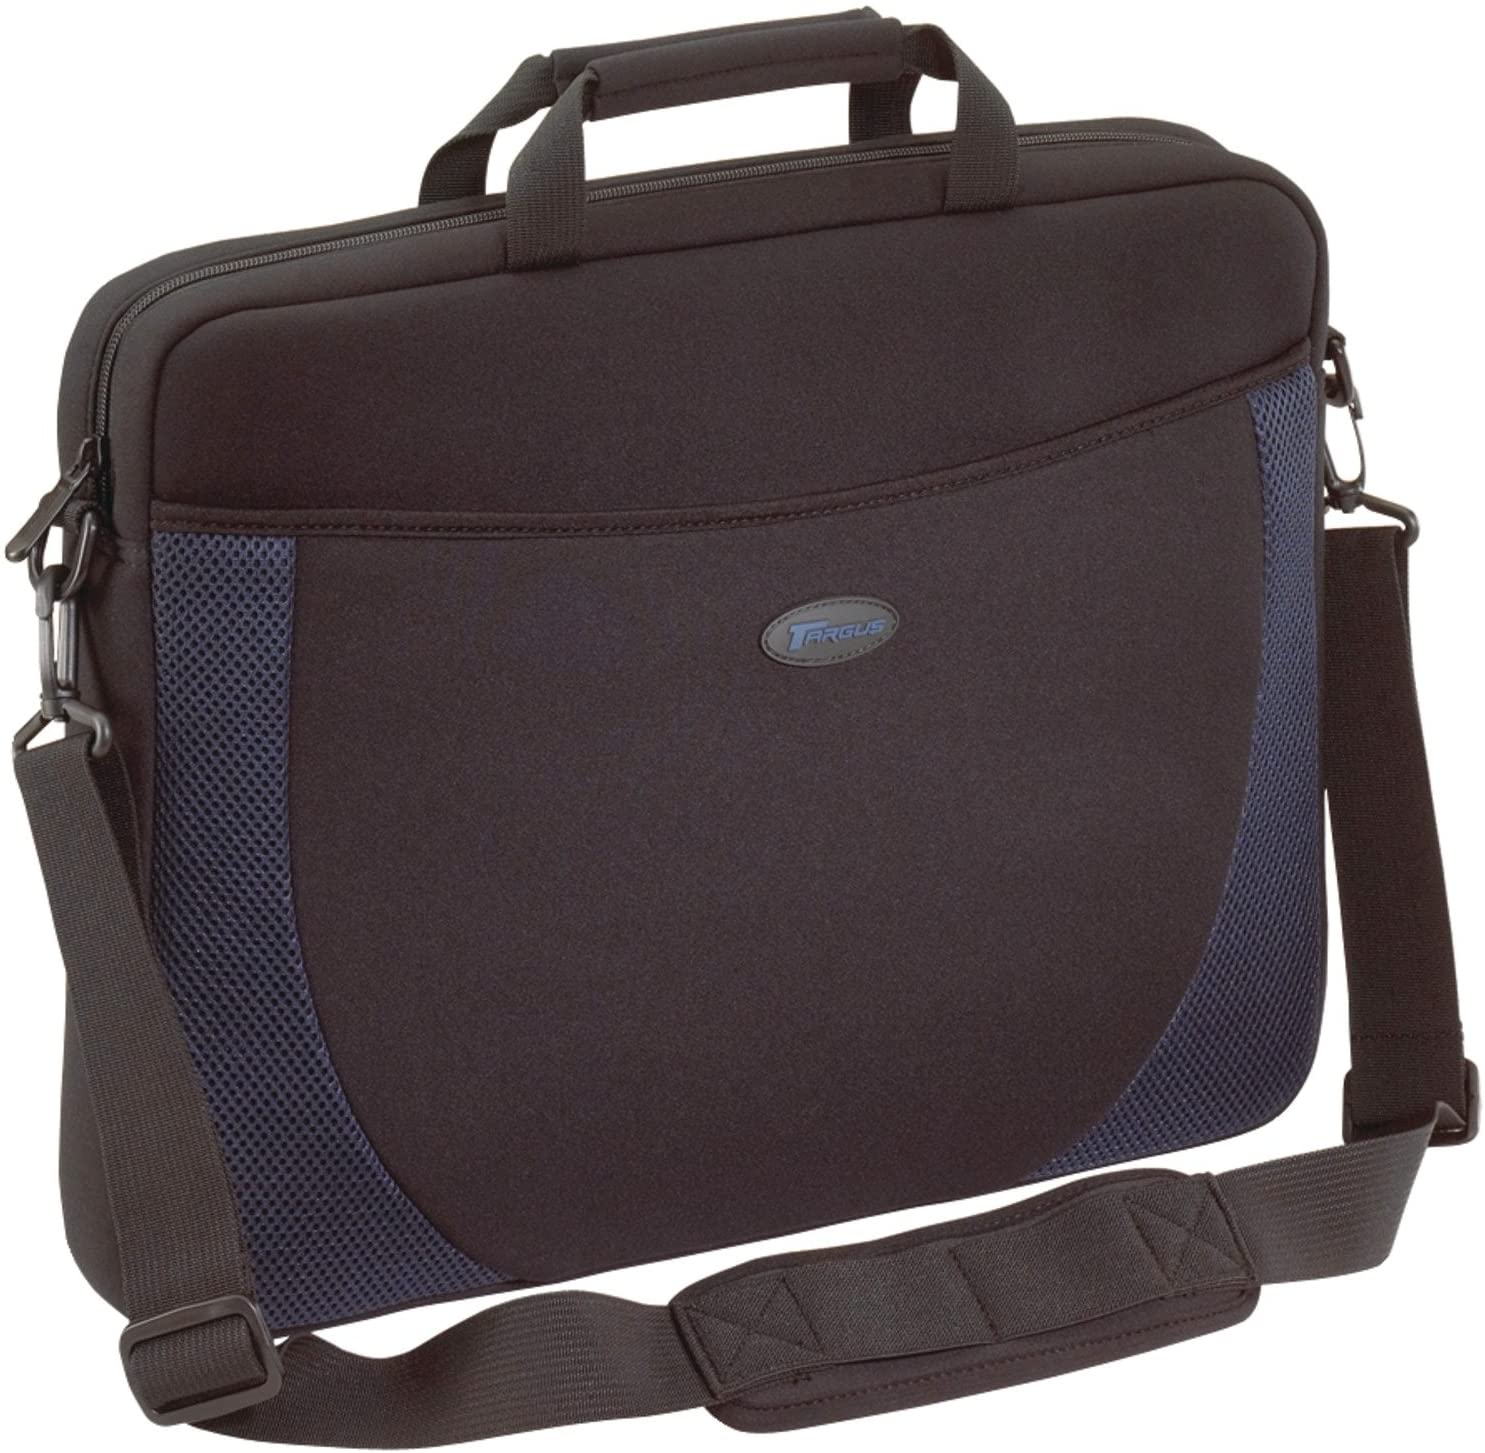 Targus Neoprene Slipcase Sleeve with Shoulder Strap, TSA Checkpoint-Friendly, Trolley Strap, Professional Business and Travel Laptop Tote Bag for 17-Inch Laptop, Black with Blue Accents (CVR217)